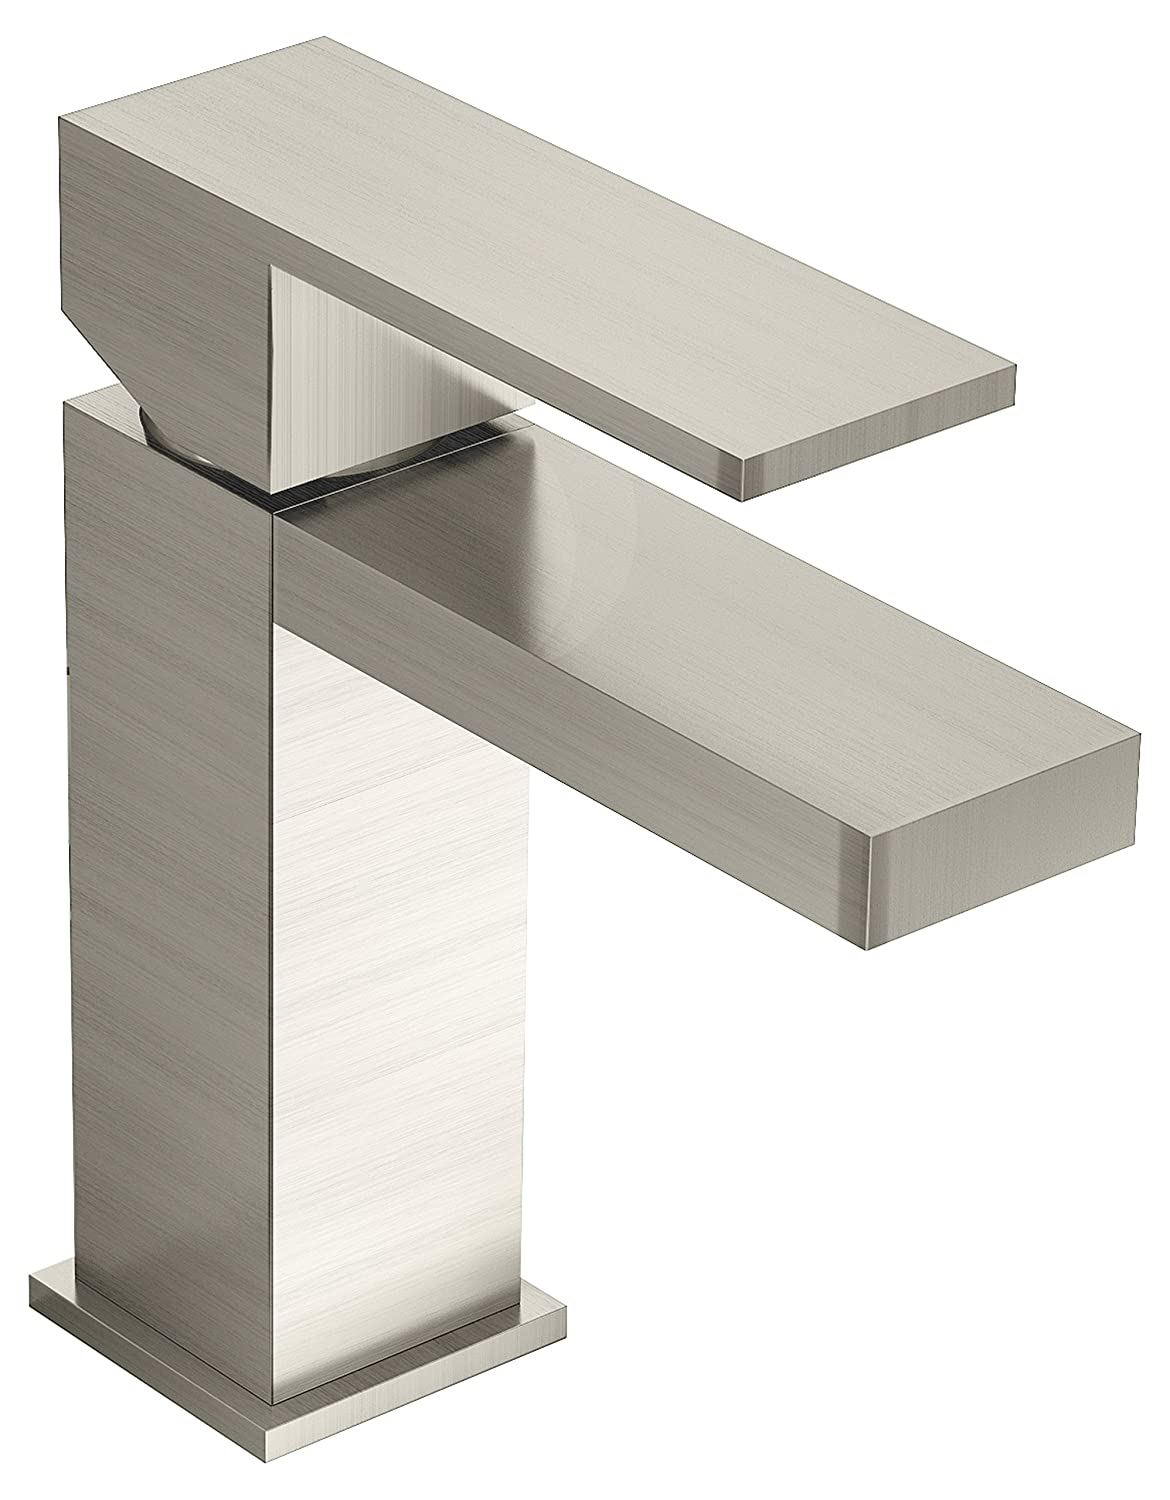 Symmons SLS-3610-STN Duro Single Handle Lavatory Faucet, Satin Nickel by Symmons B00FN6KRZO